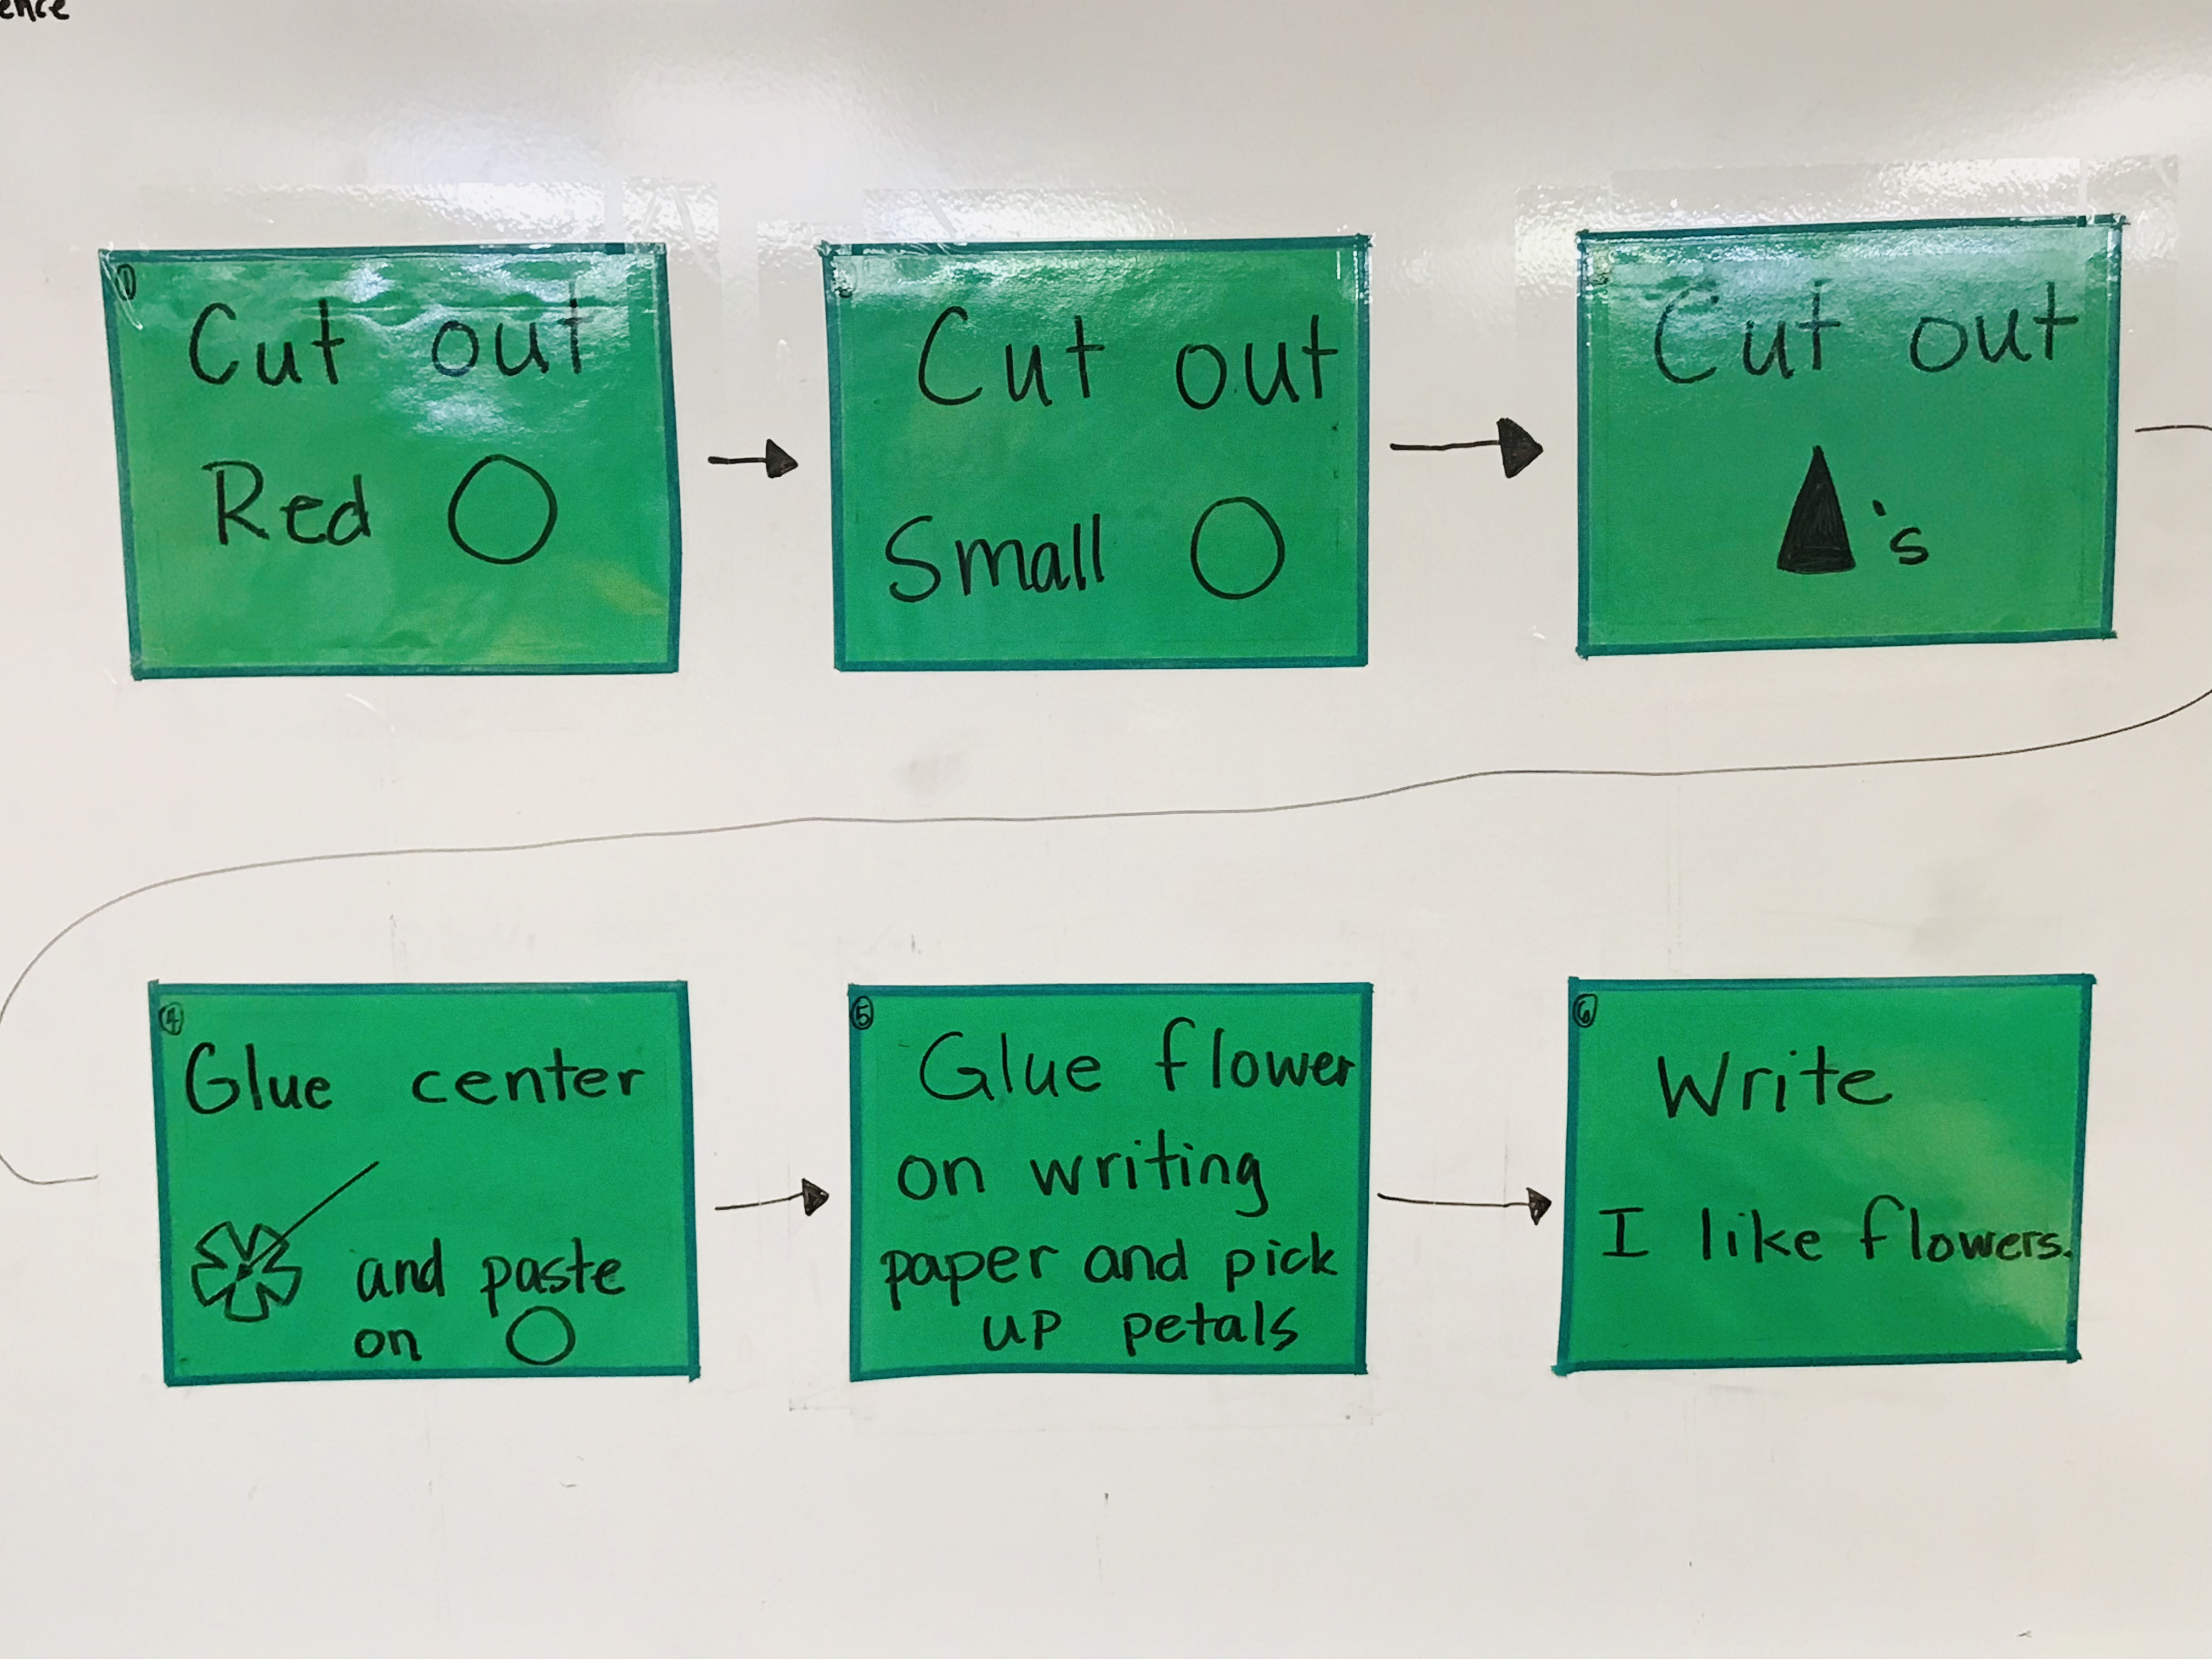 Green boxes with directions